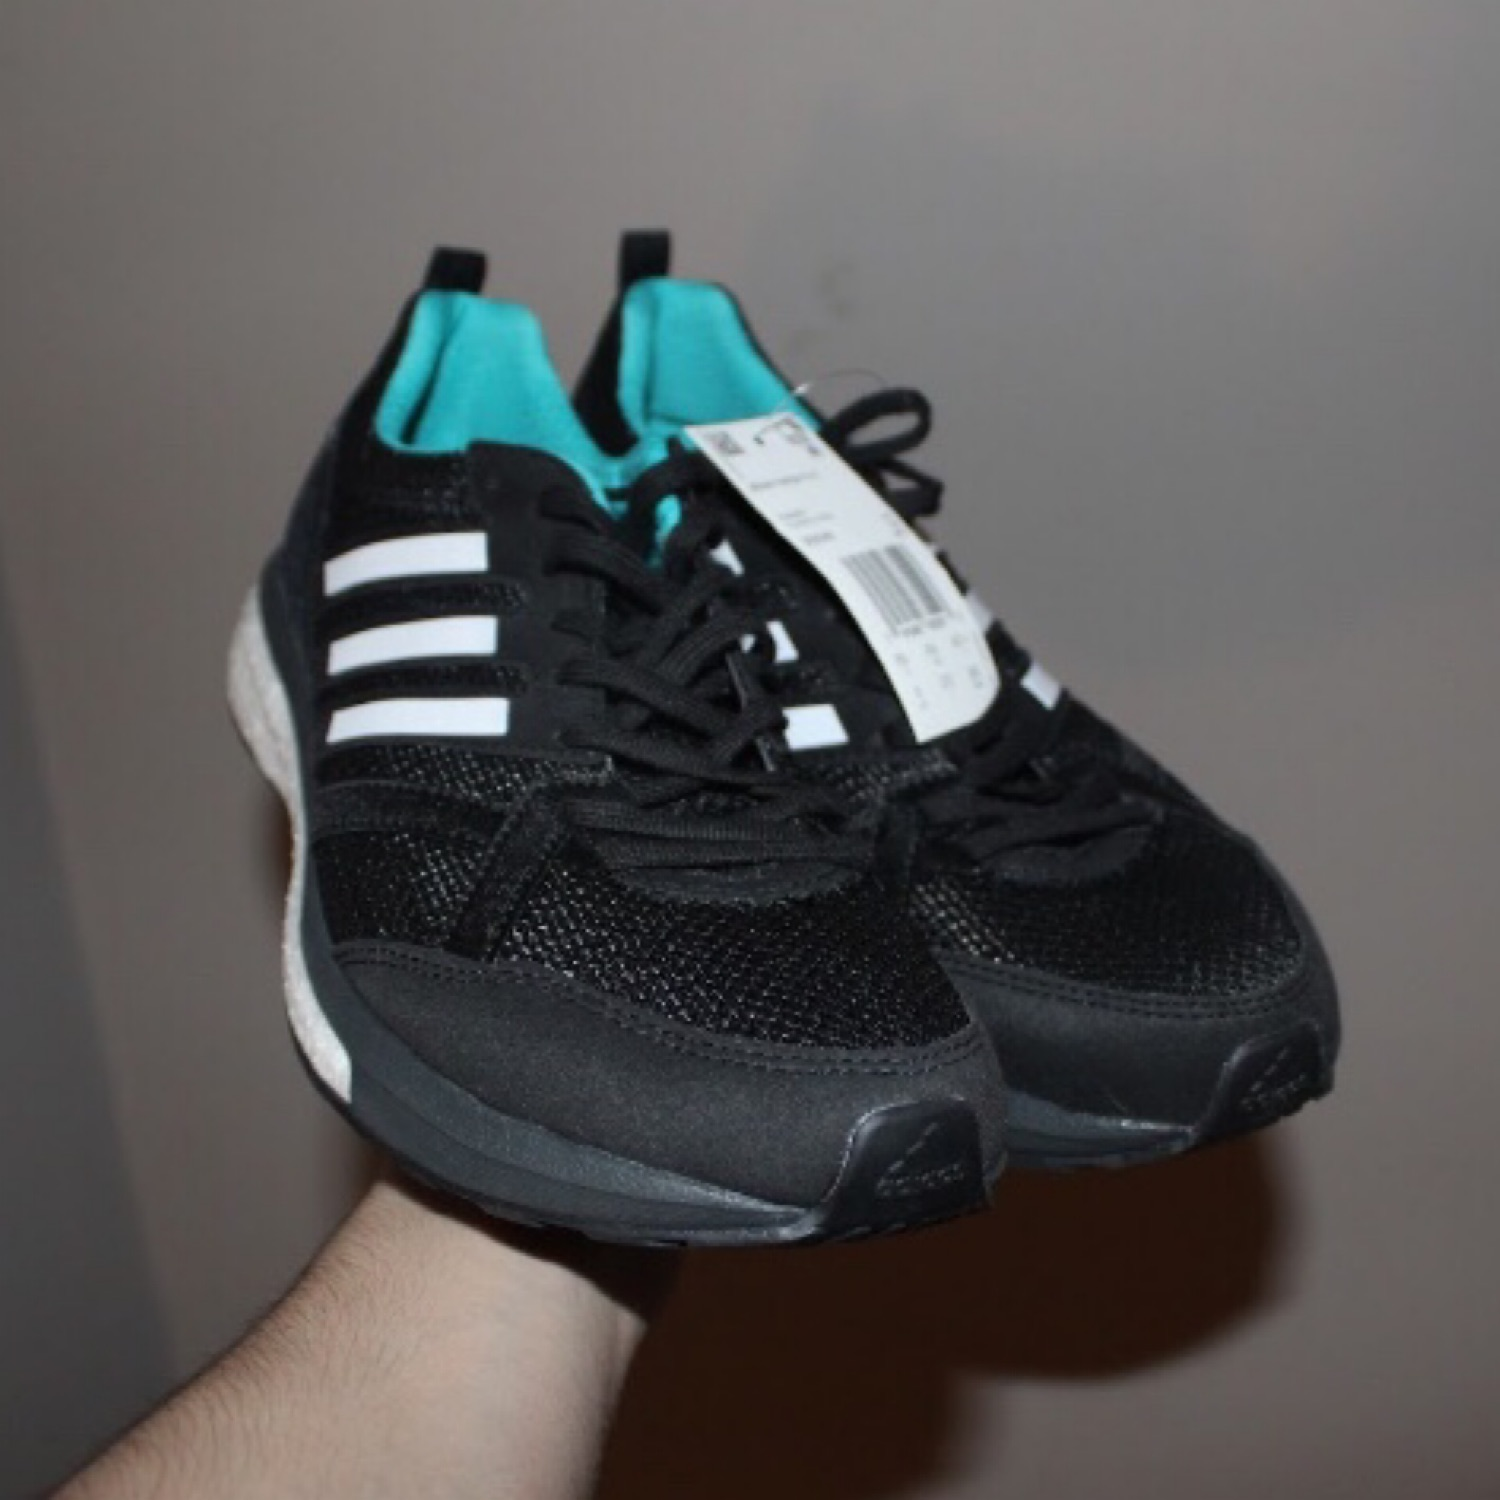 wholesale dealer 62230 0f9a8 Adidas Adizero Tempo 9 Boost